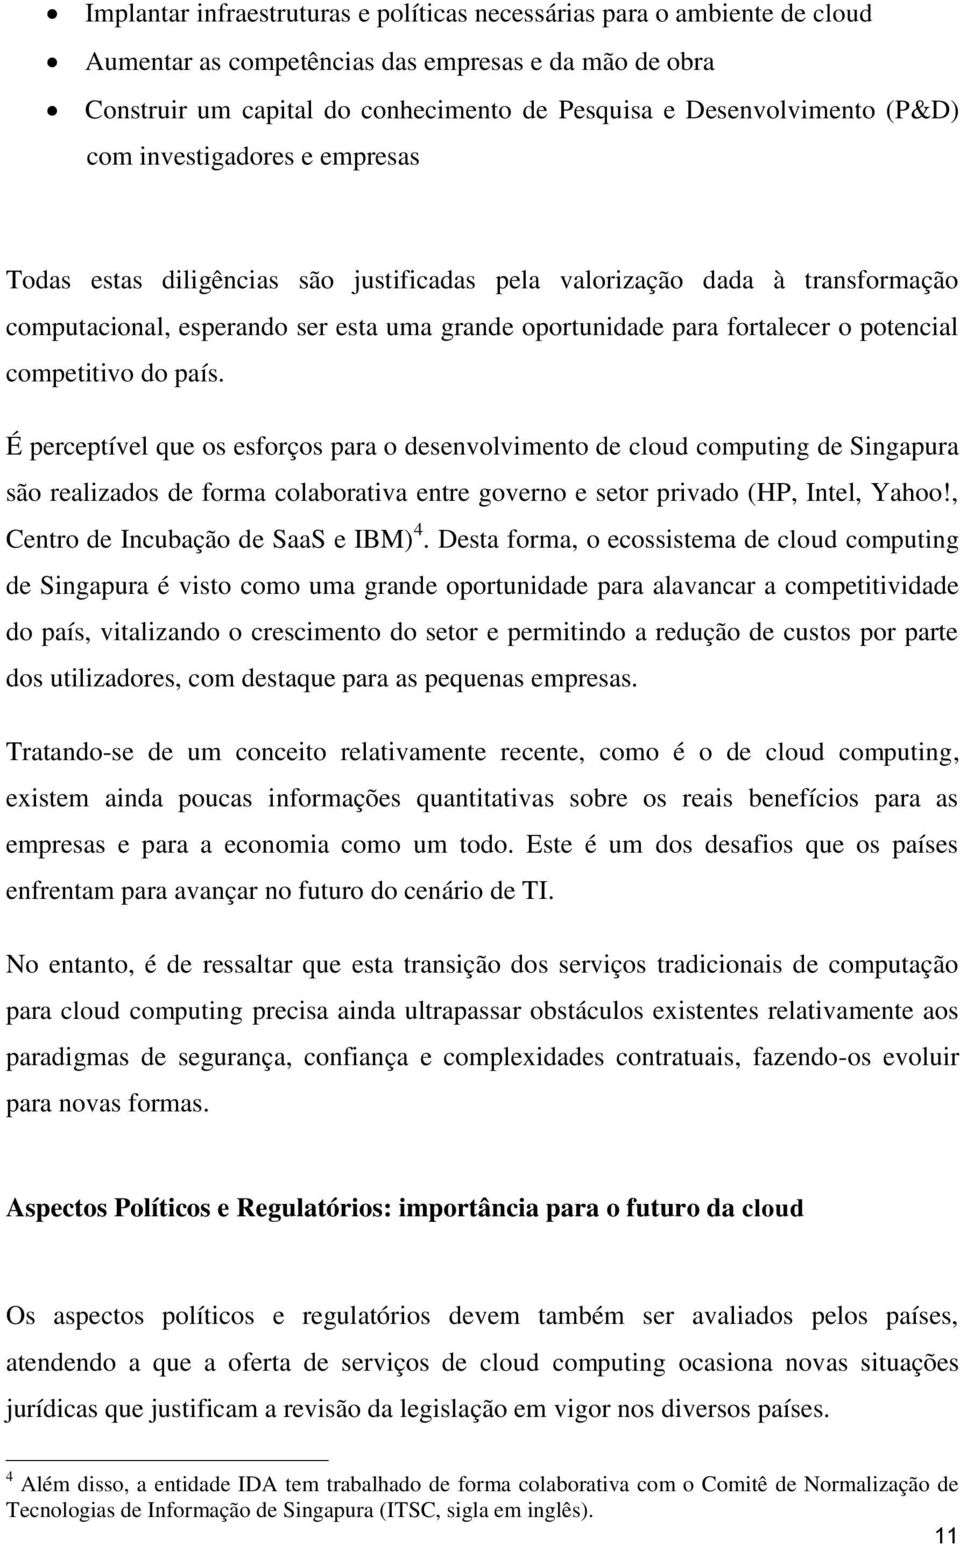 potencial competitivo do país.